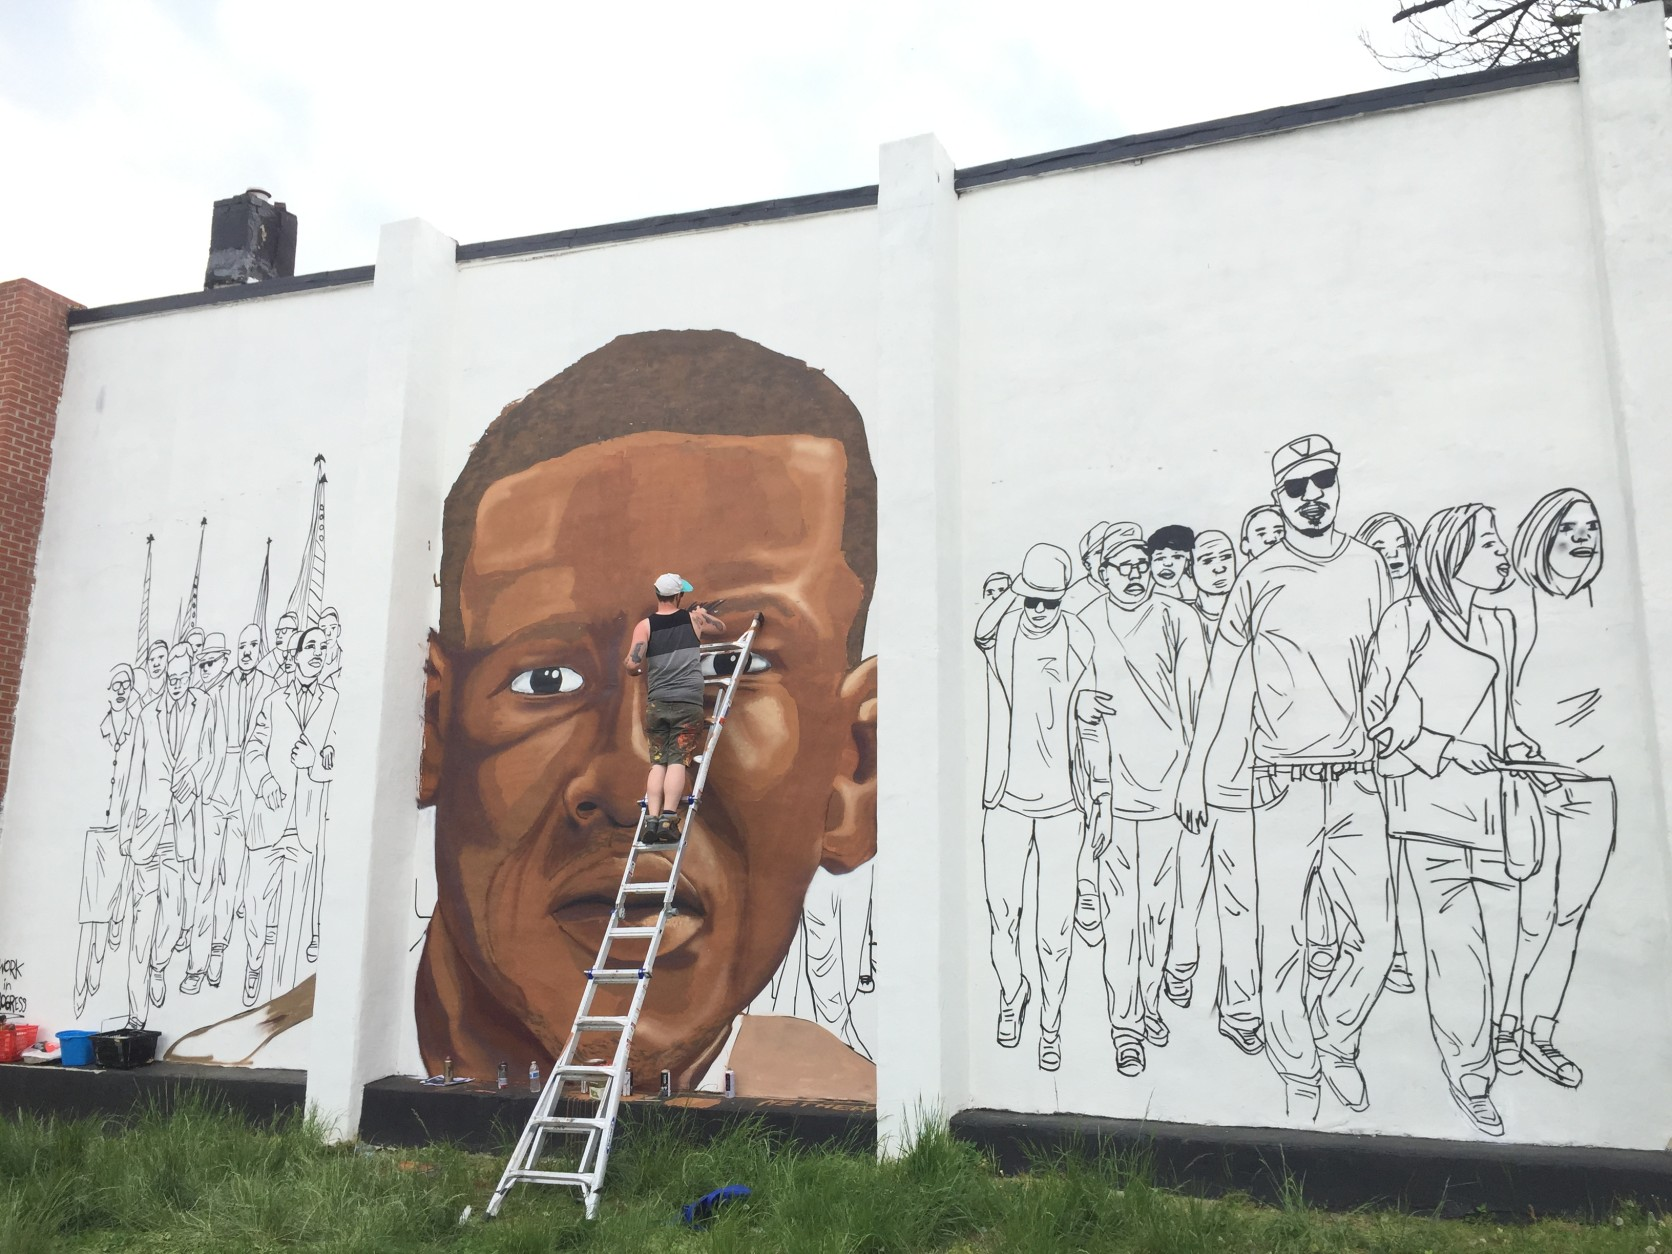 On the other side, the mural depicts modern youth who gathered for Freddie Gray's vigil. (WTOP/Andrew Mollenbeck)